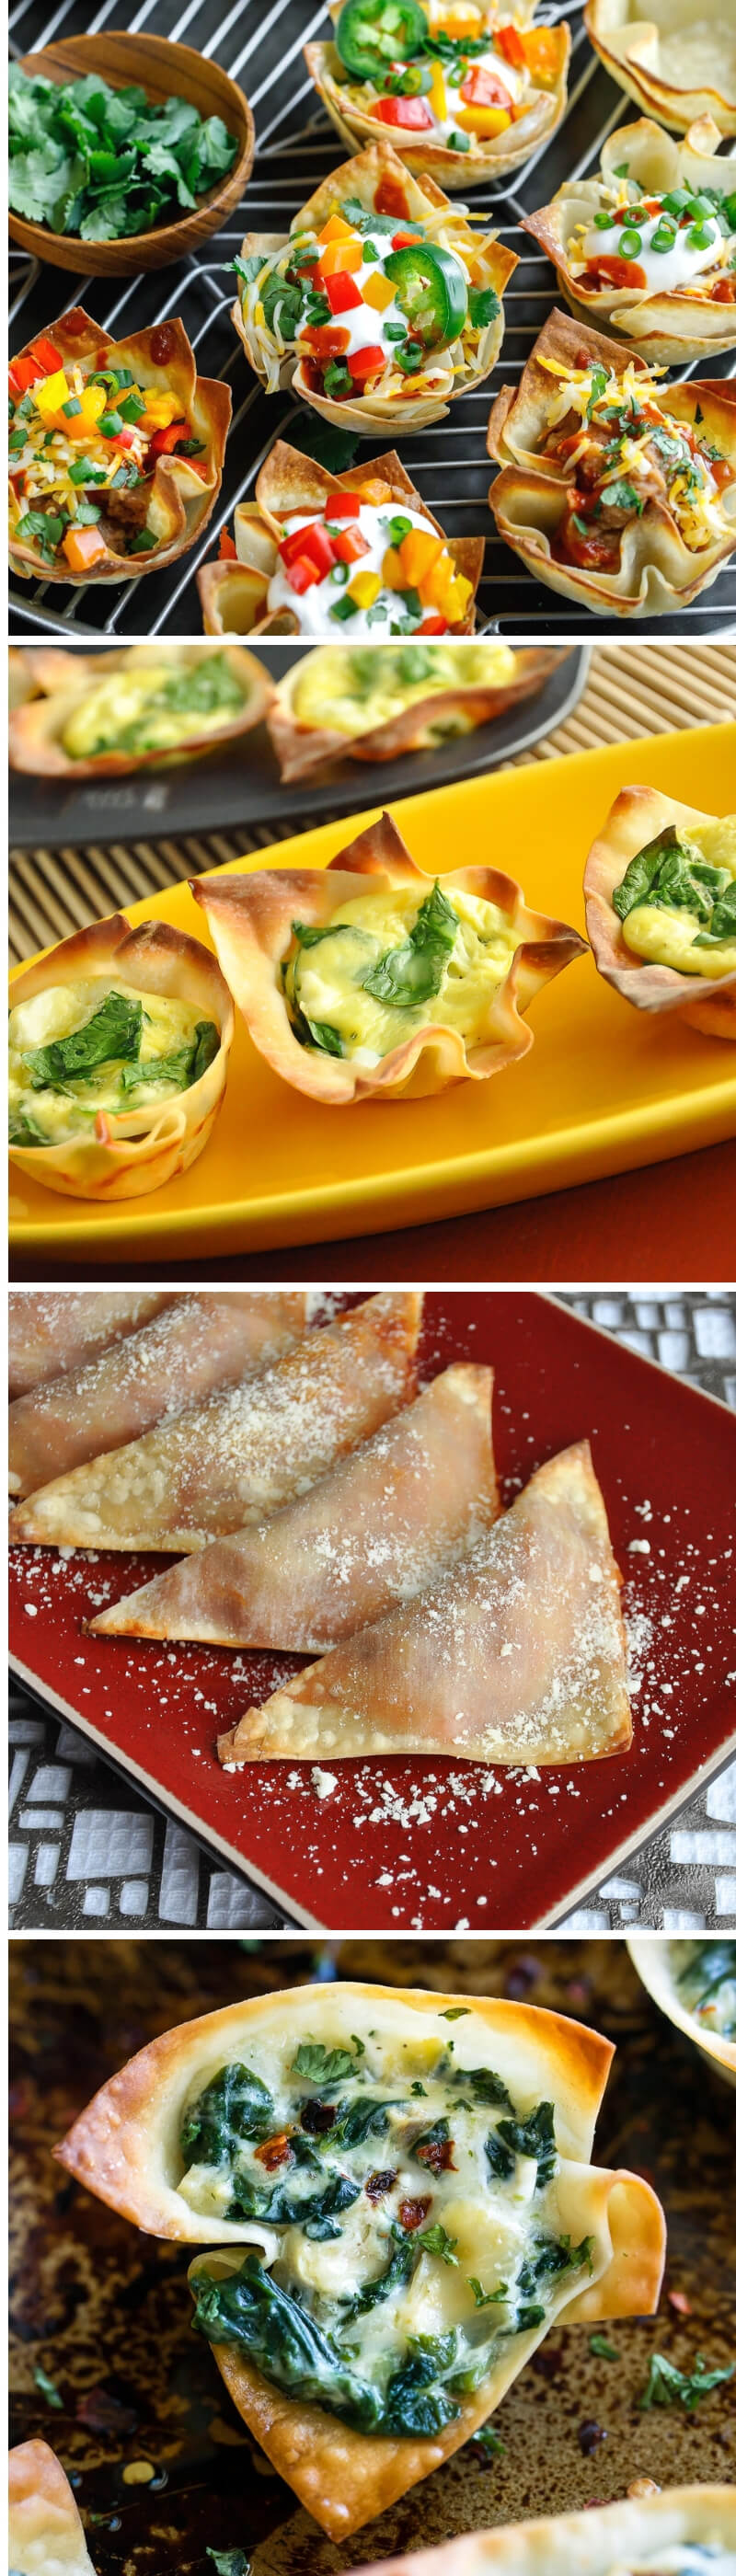 Today we're rounding up 10 tasty baked wonton recipes. Grab a package of wonton wrappers and get ready for some fast and flavorful appetizers! #wonton #party #appetizer #partyfood #snacks #vegetarian